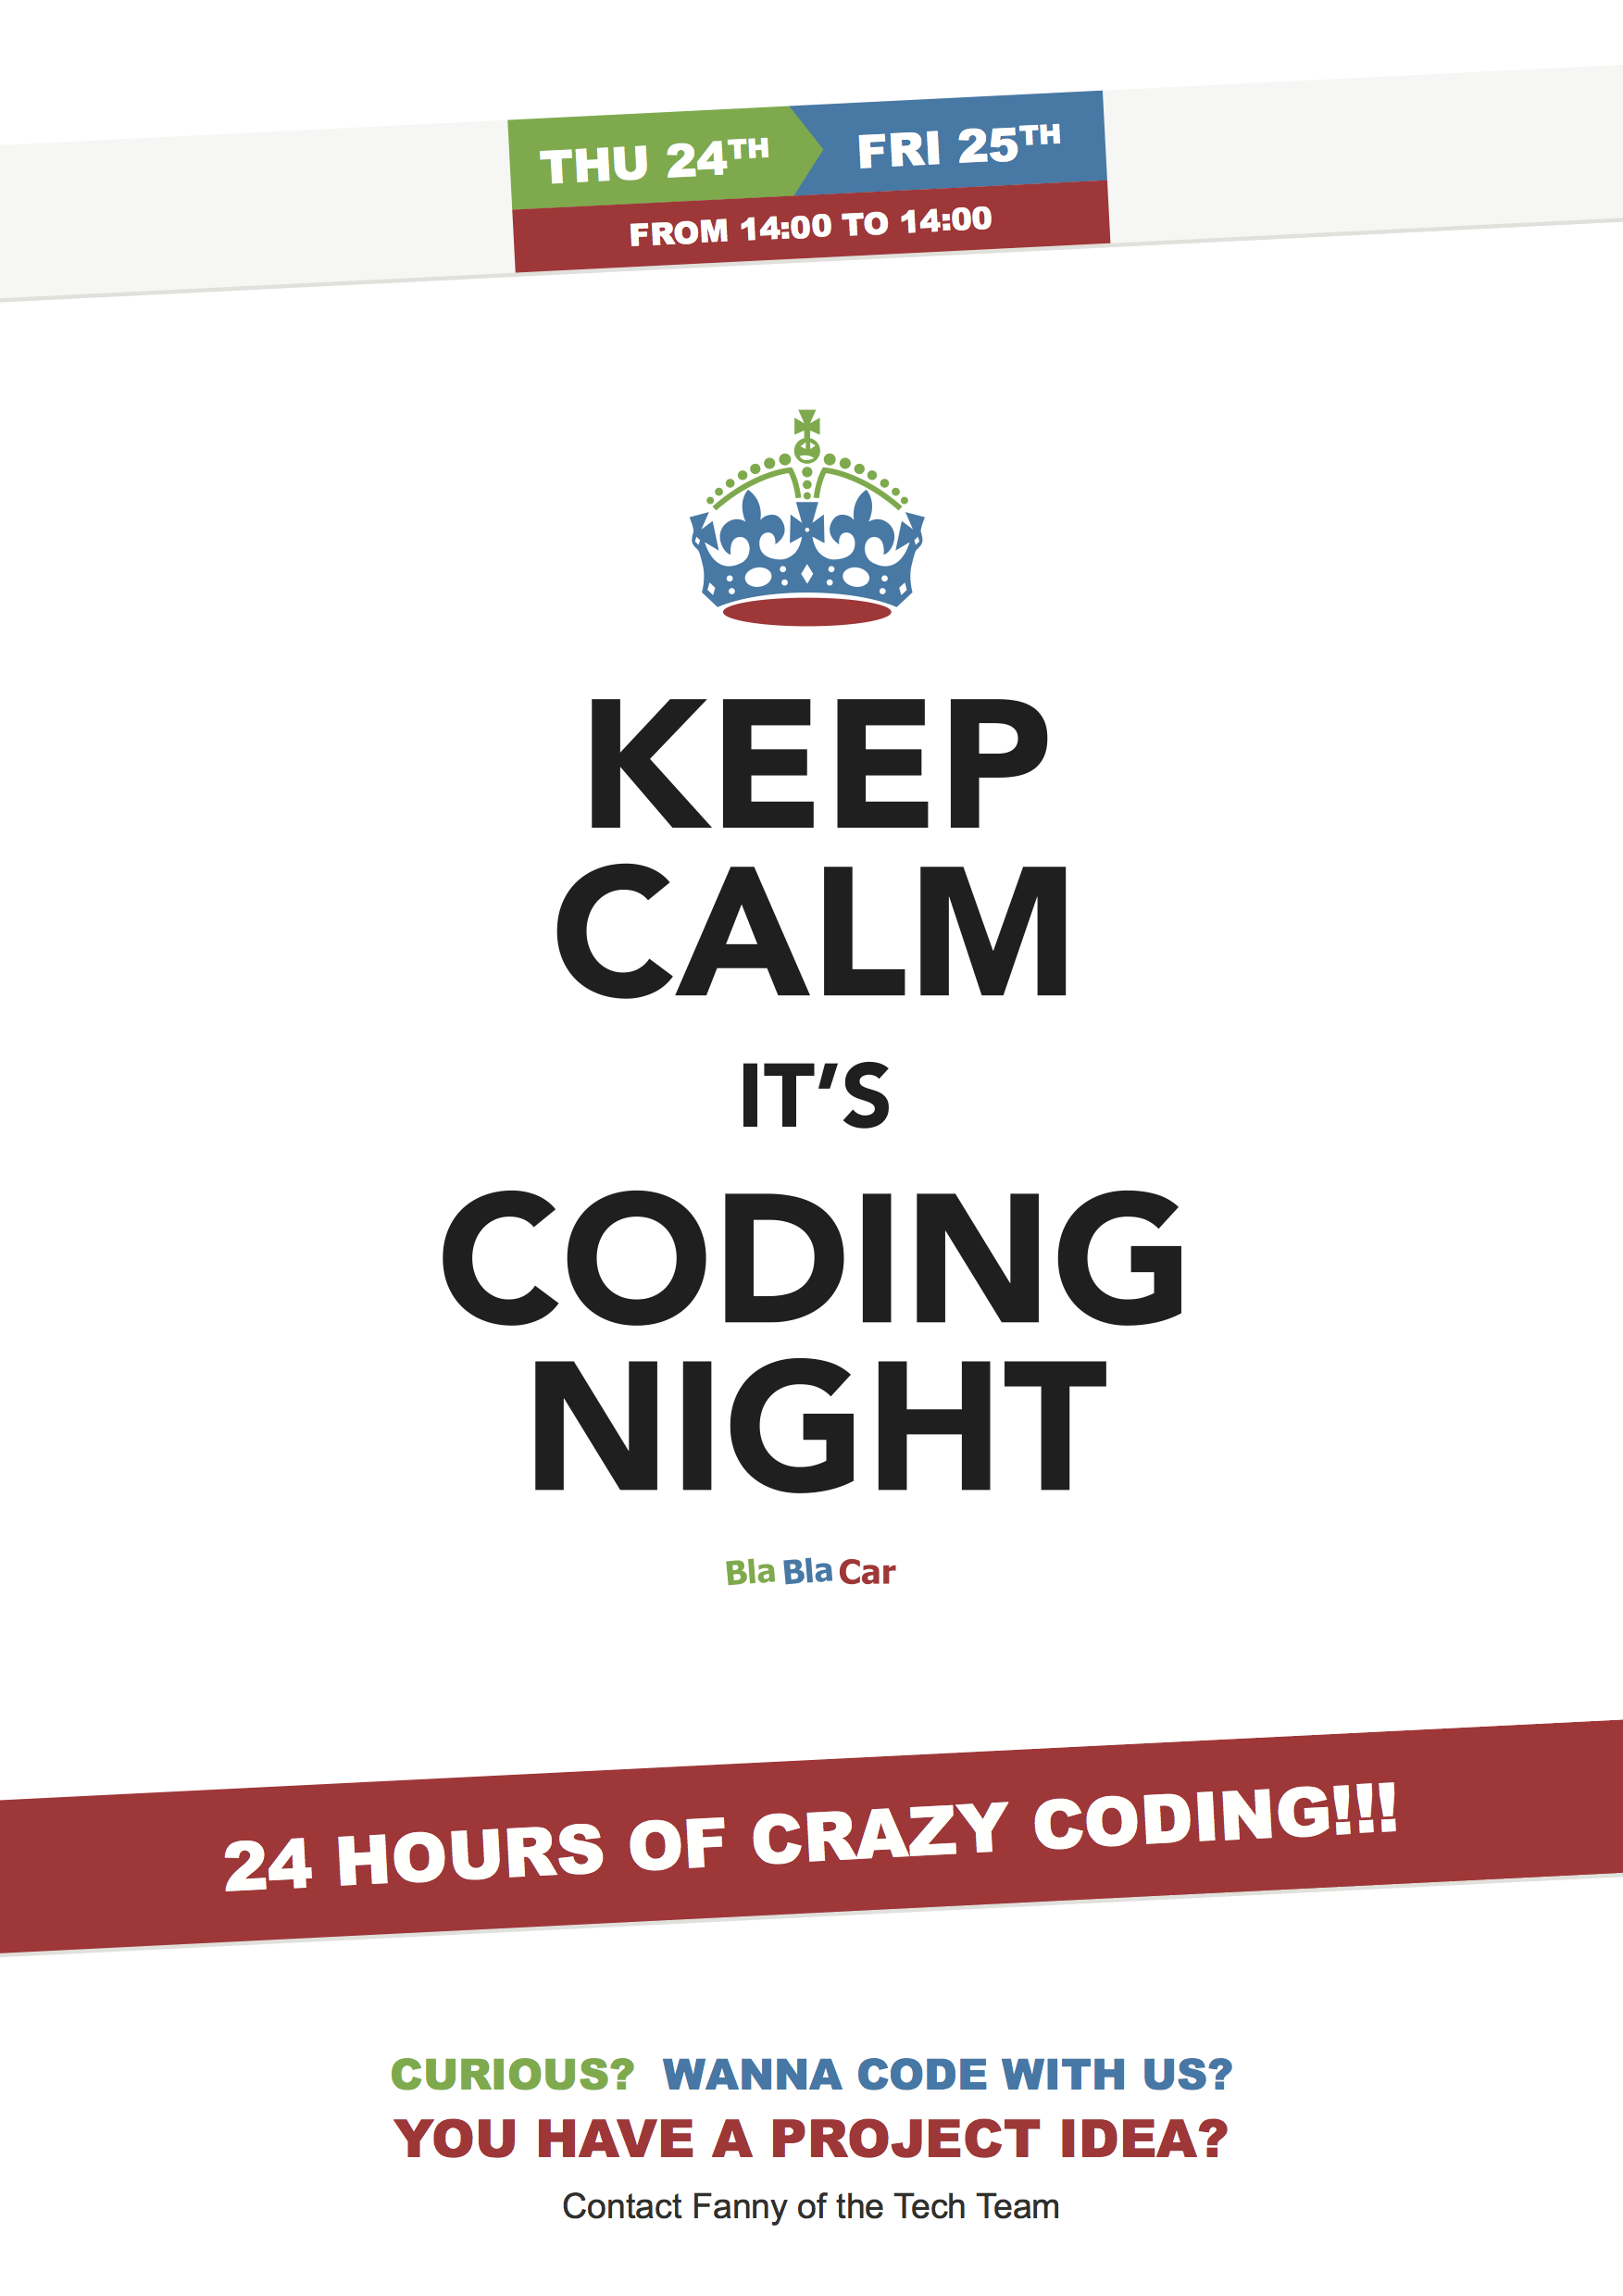 2nd Coding Night at BlaBlaCar